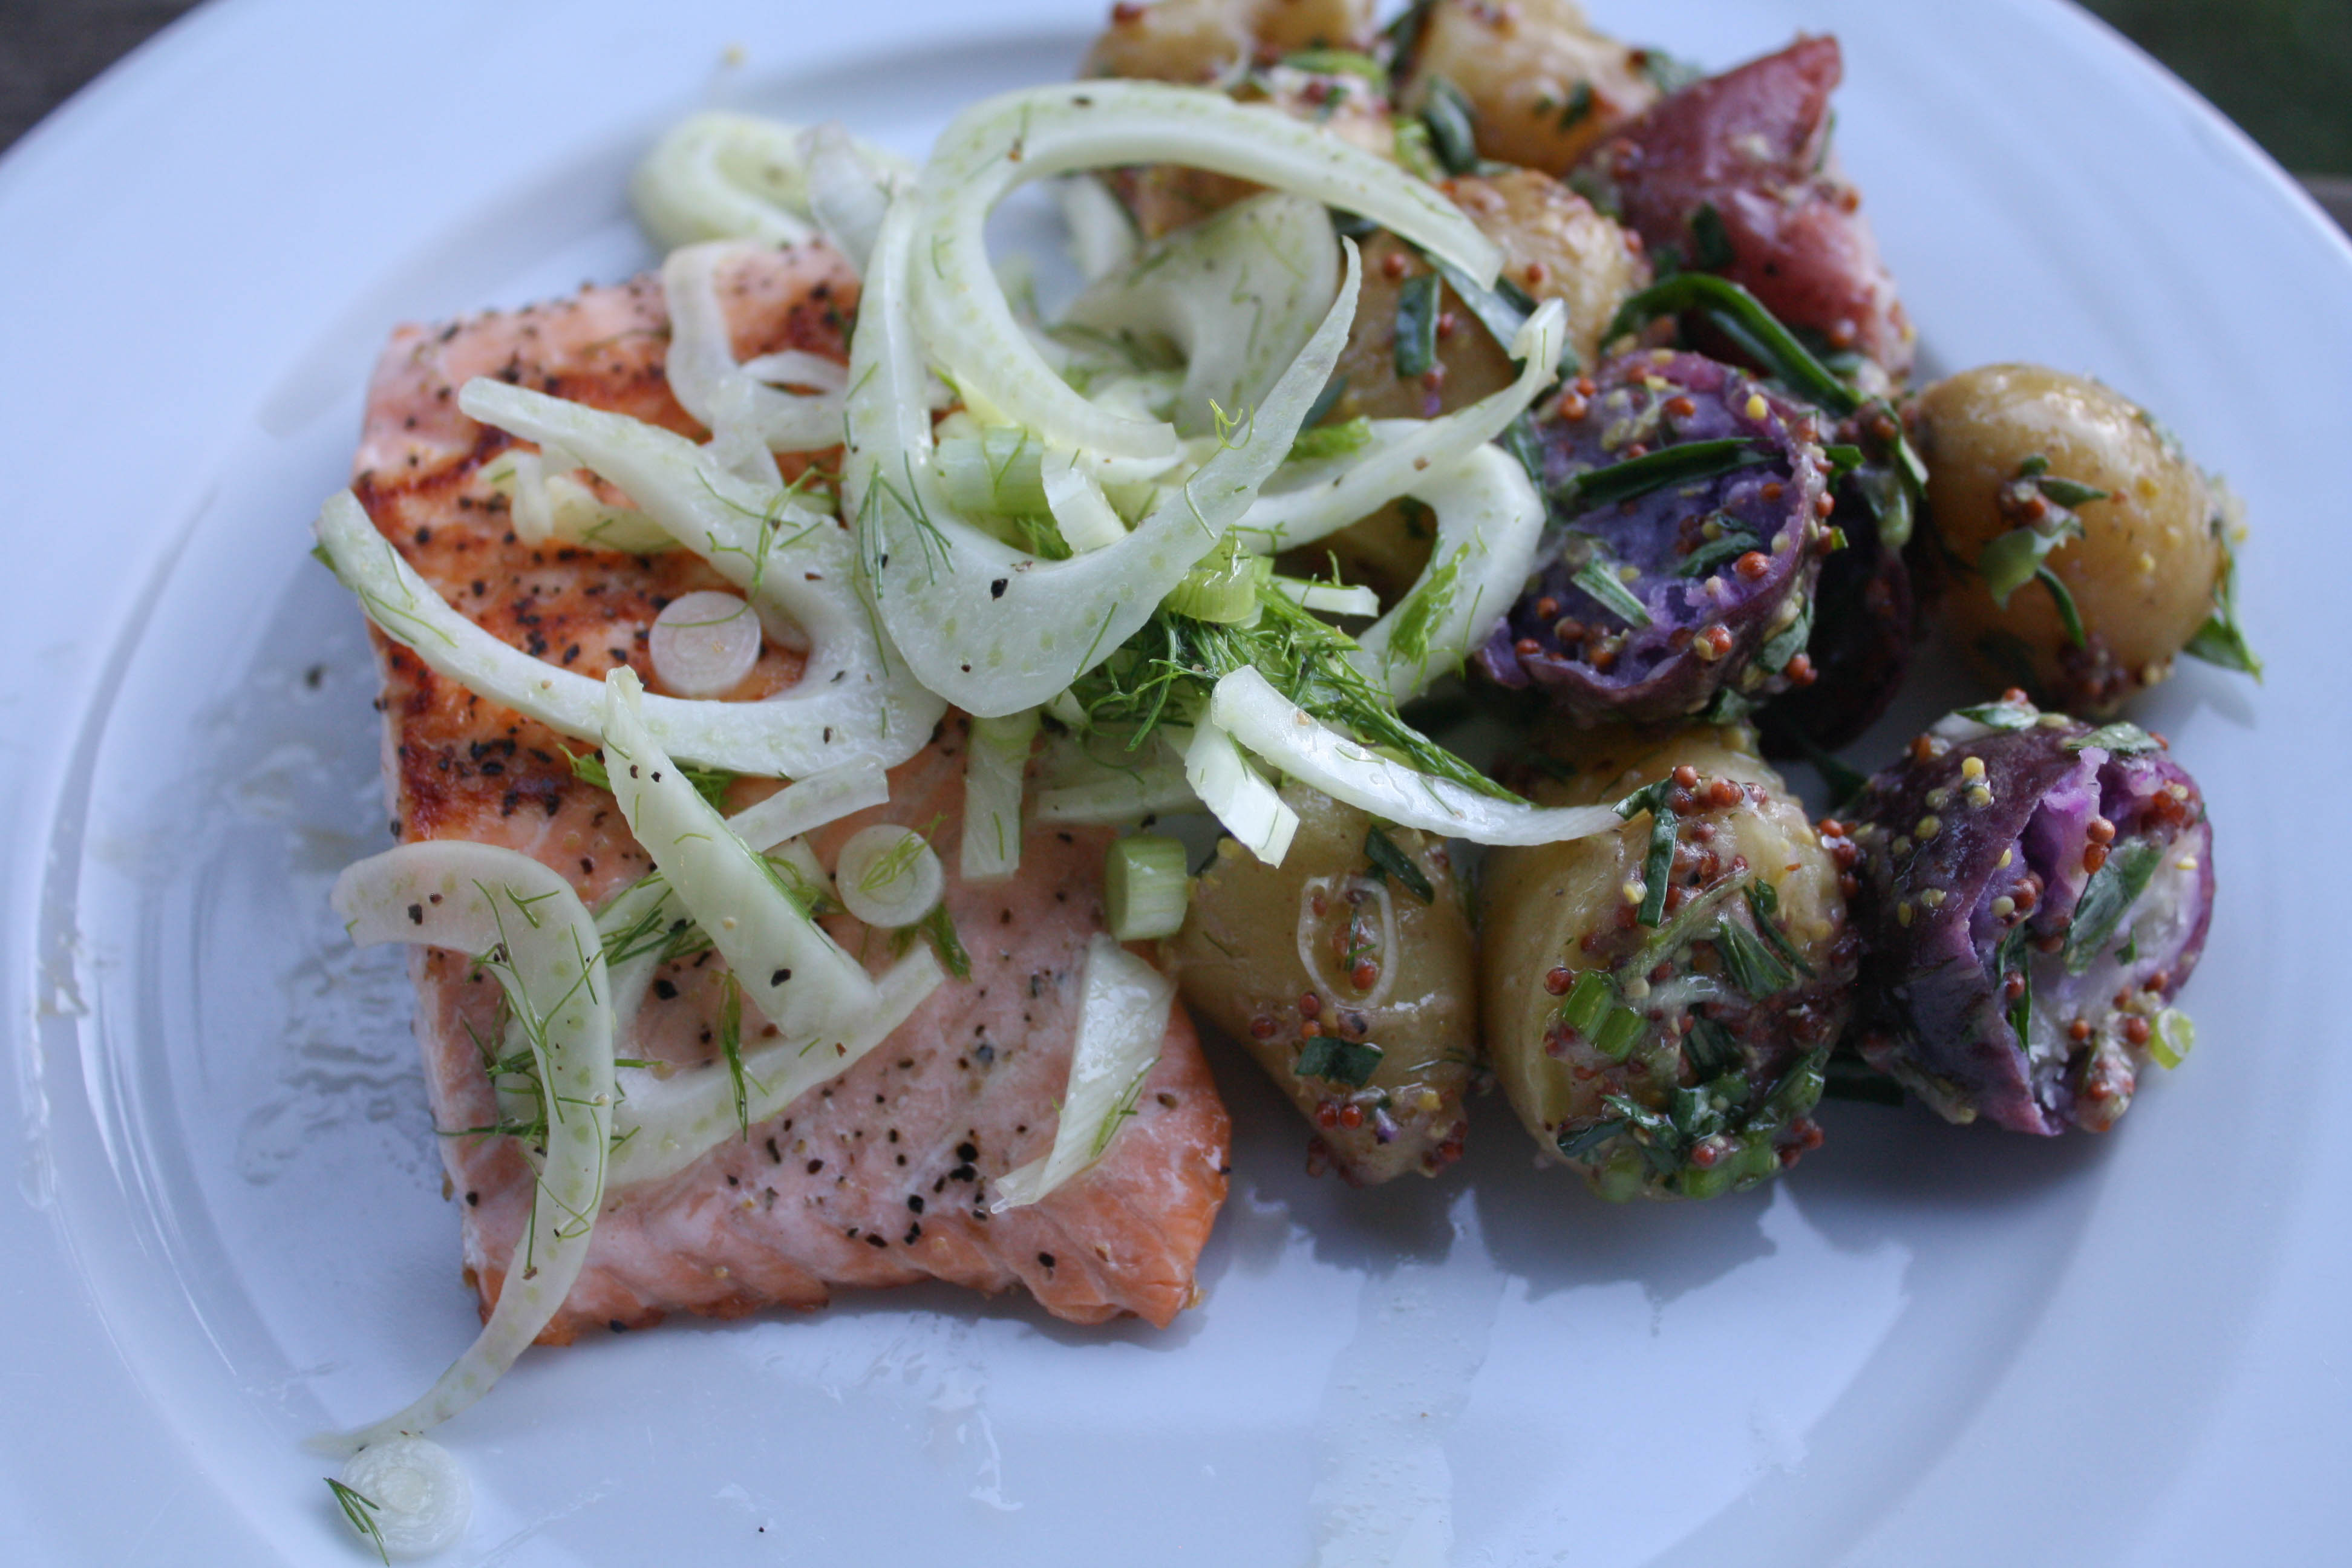 Blue apron and weight loss - After A Few More Bites I Was More And More Impressed The Sear On The Top Of The Salmon Had A Little Crunch And It Was Awesome The Potato Salad Something